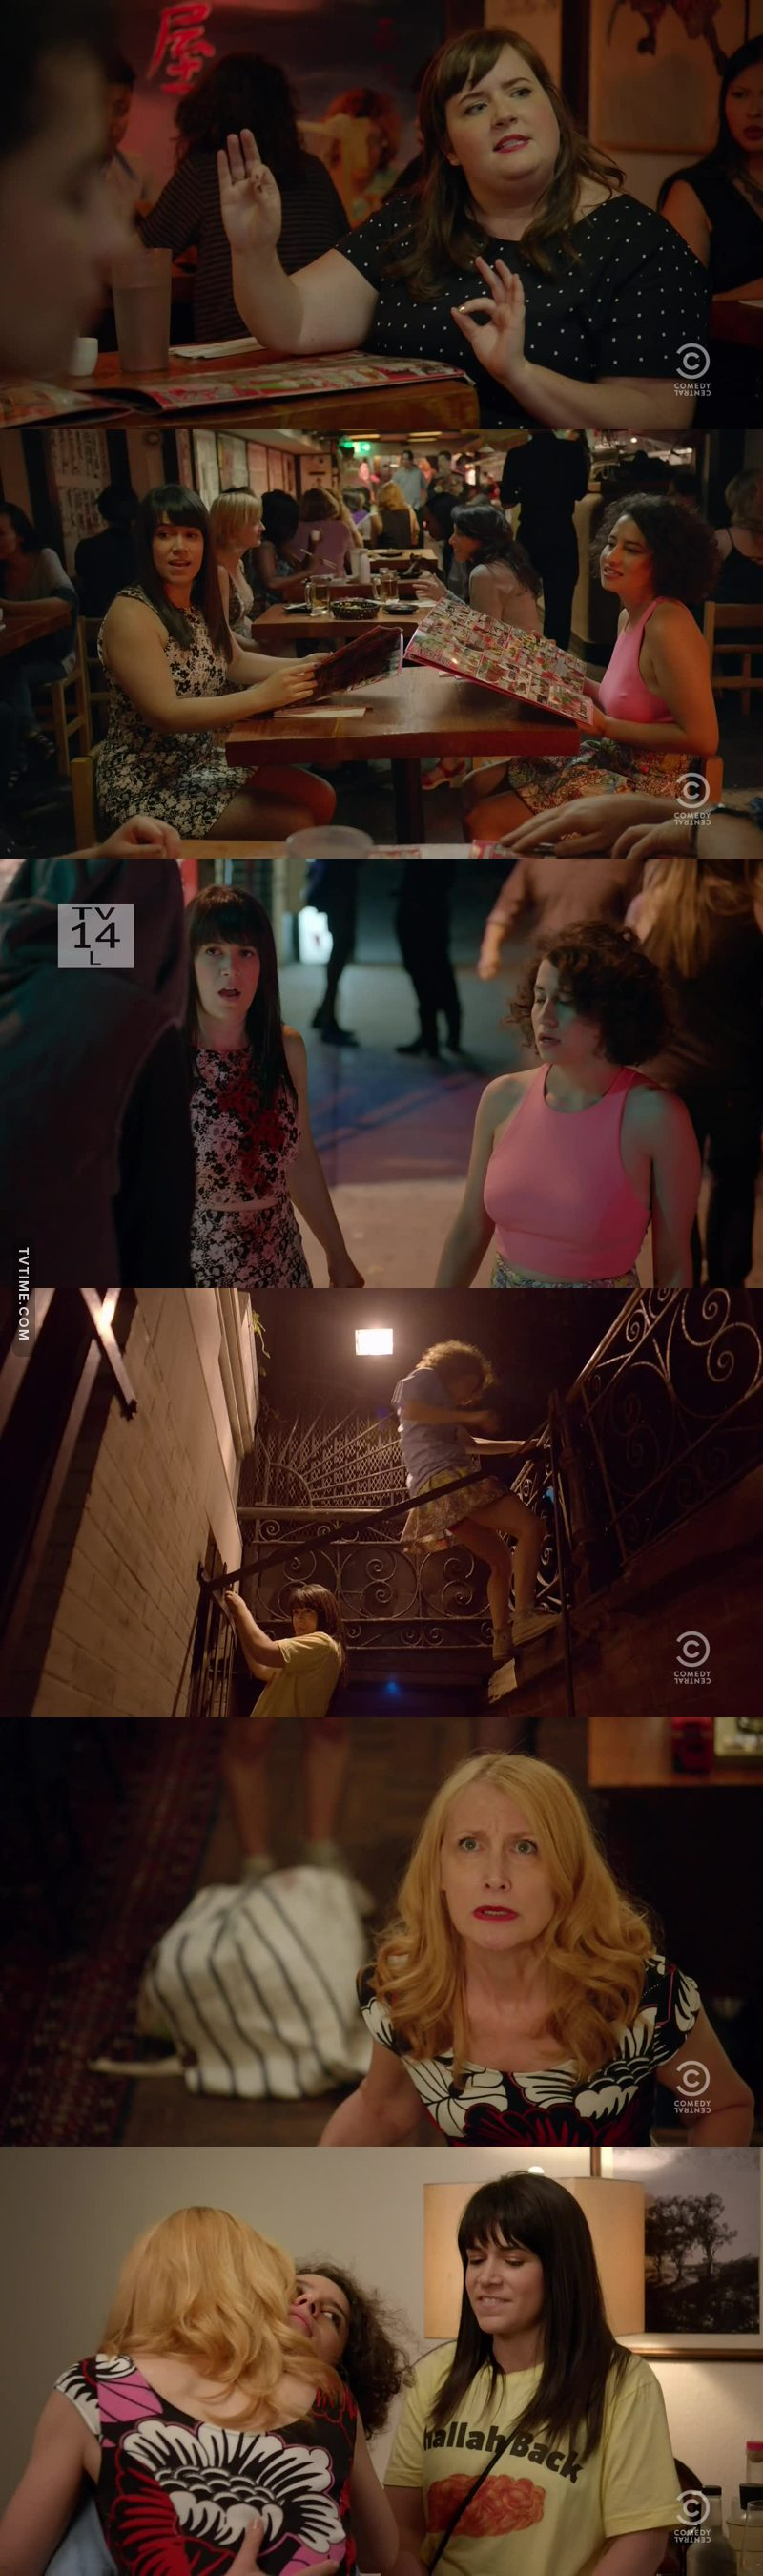 broad city s02e10 subtitles